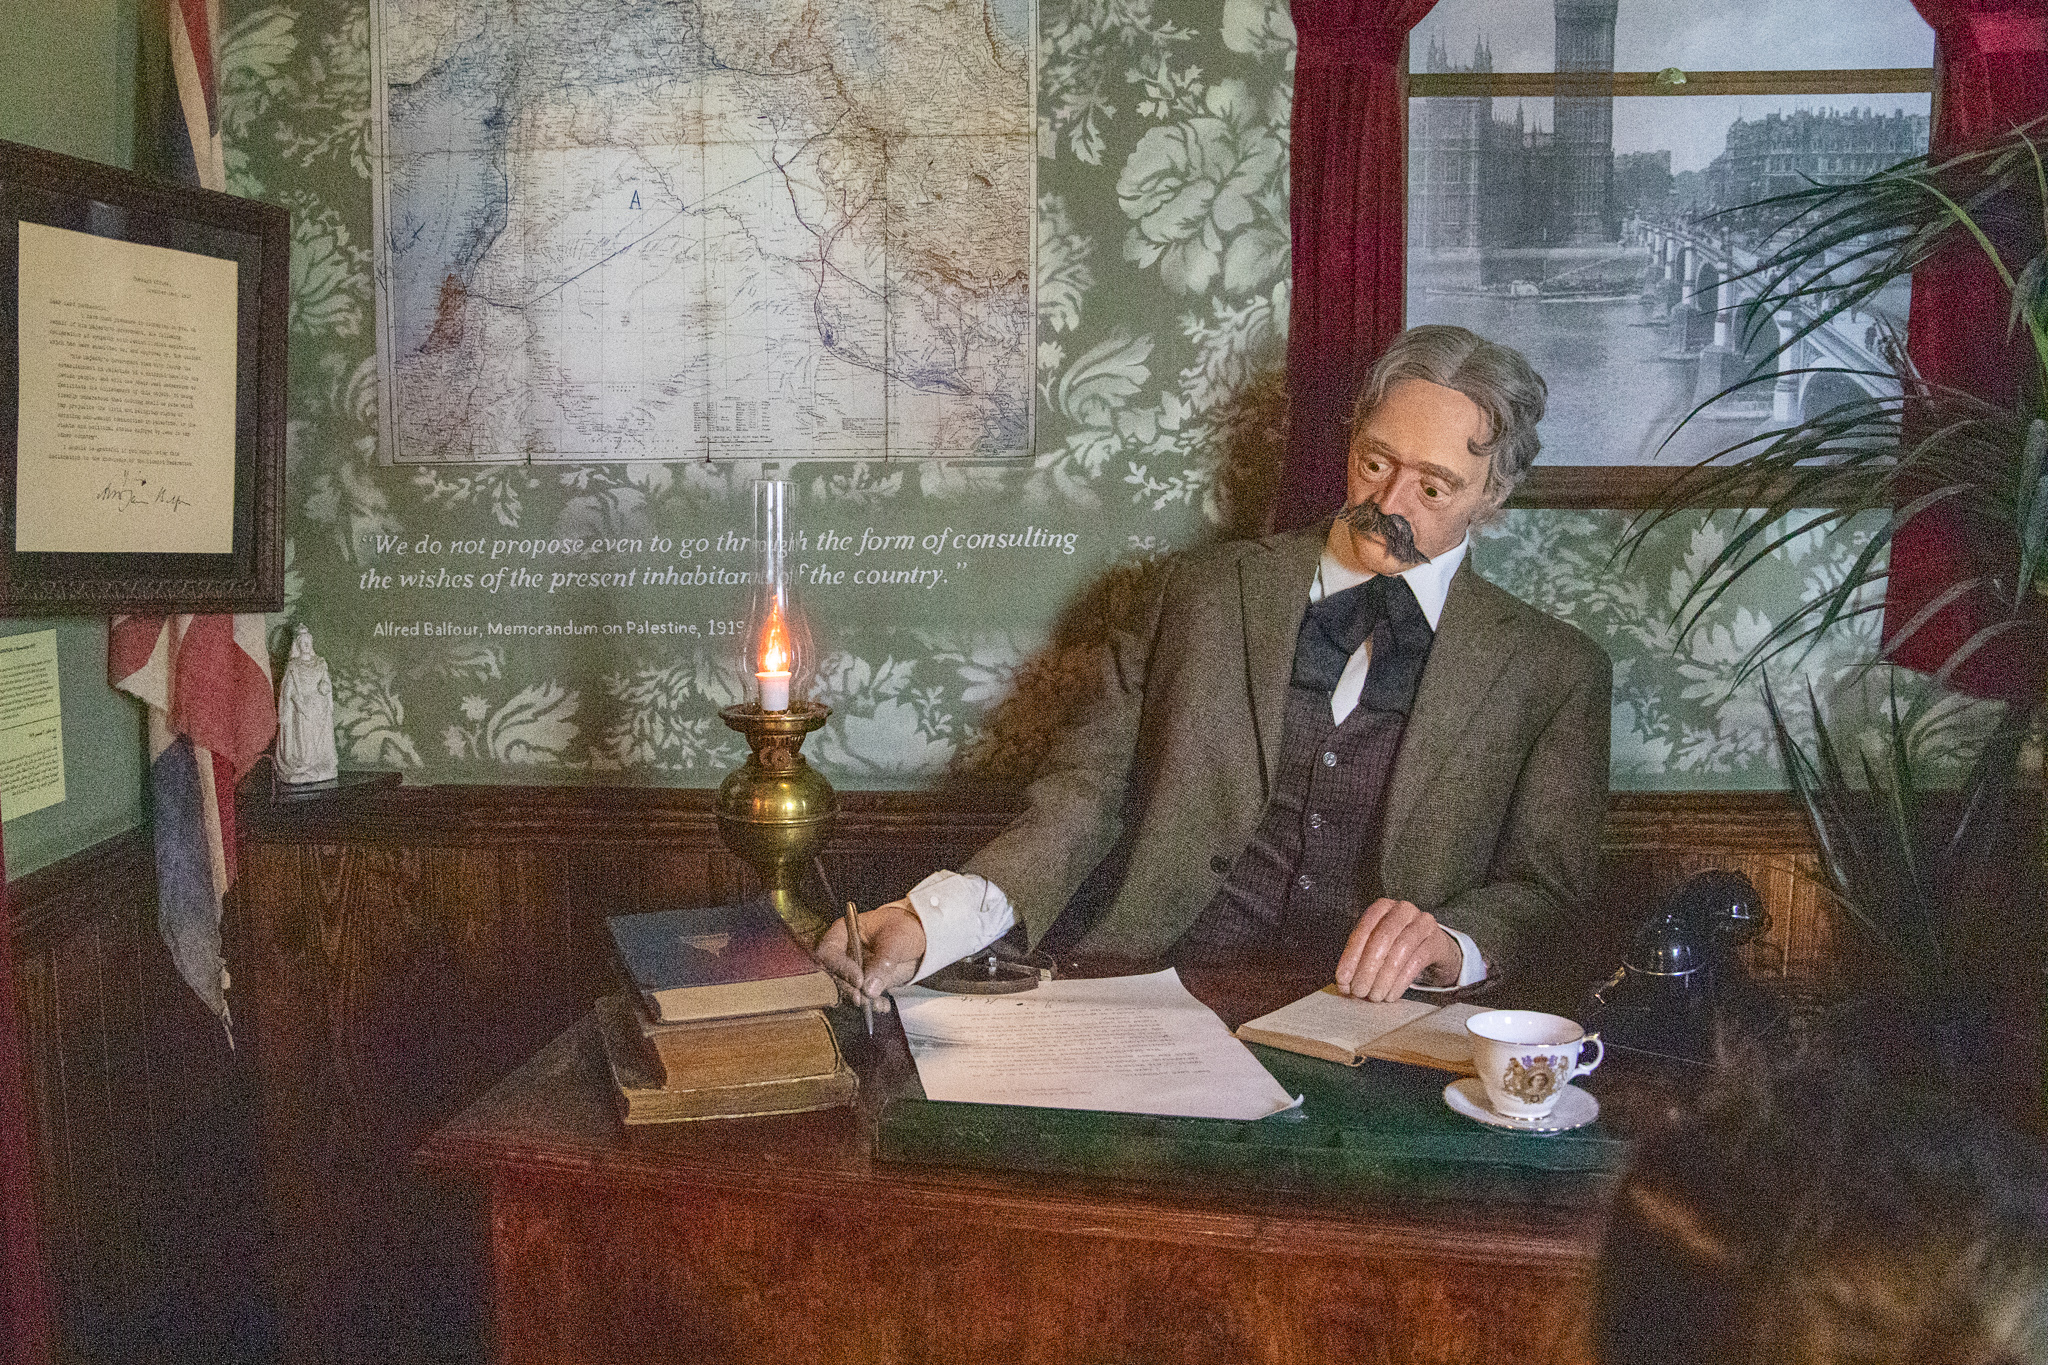 Mechanical Arthur Balfour signing a replica of the Balfour declaration at Museum entrance